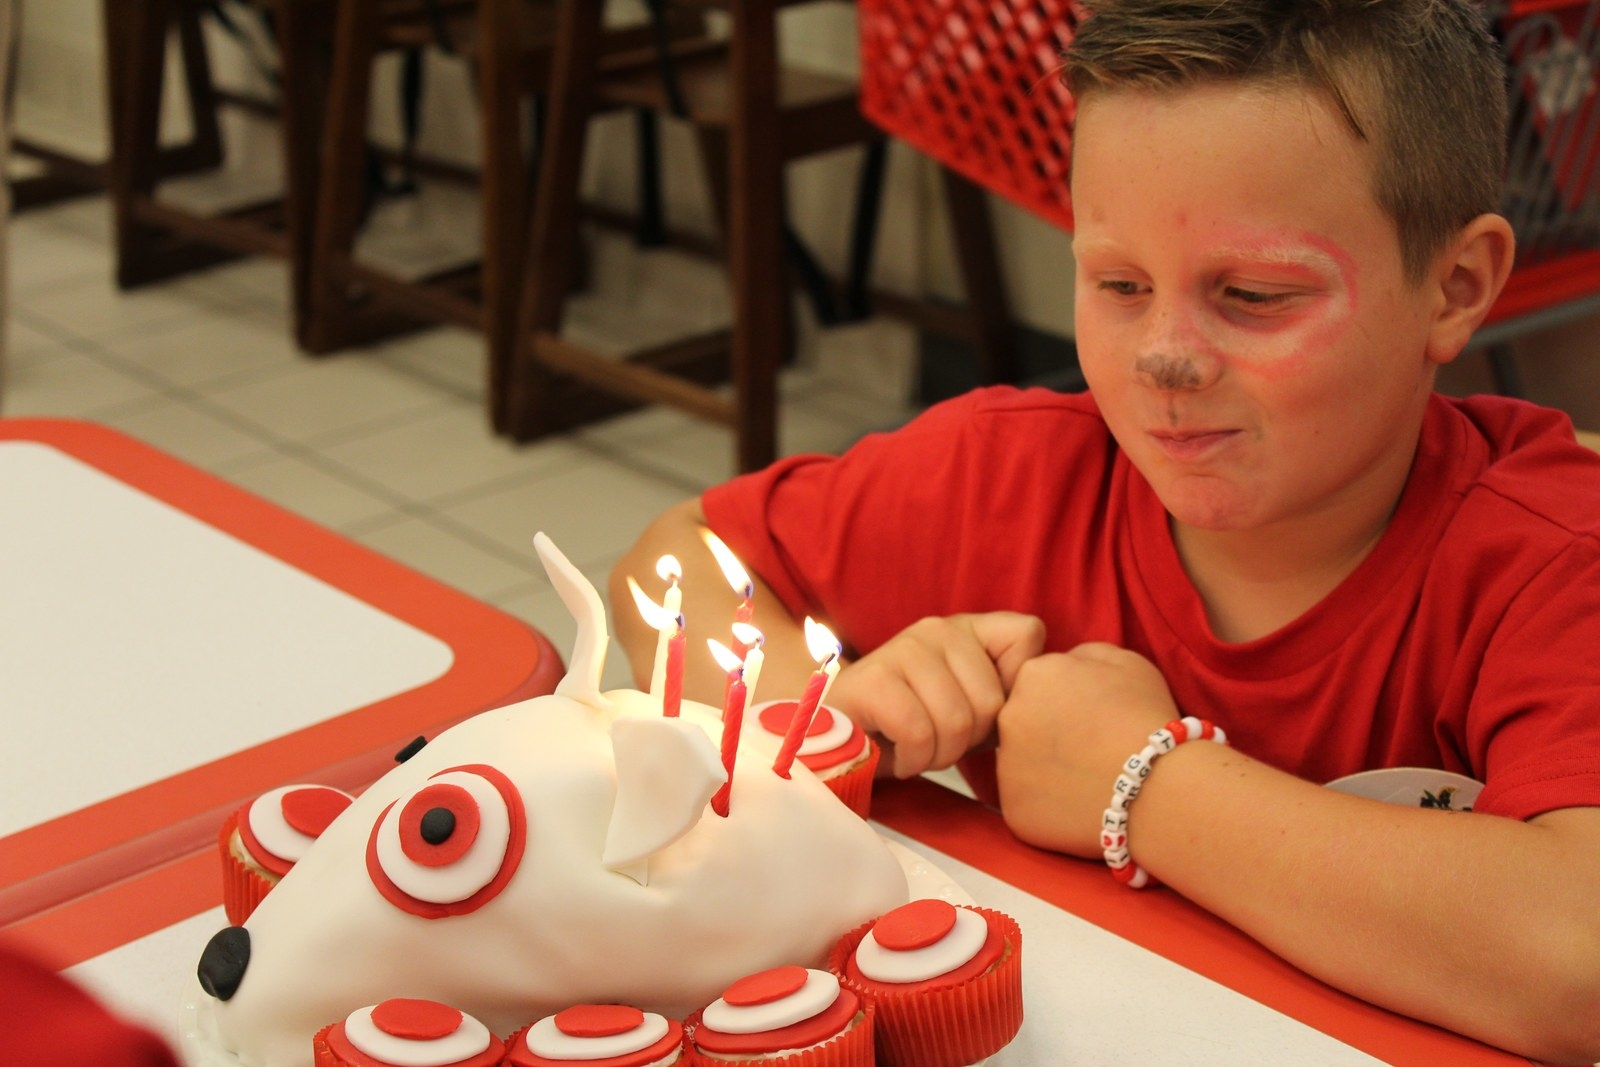 Incredible This Kid Had His Birthday Party At Target And It Was Everything Funny Birthday Cards Online Alyptdamsfinfo